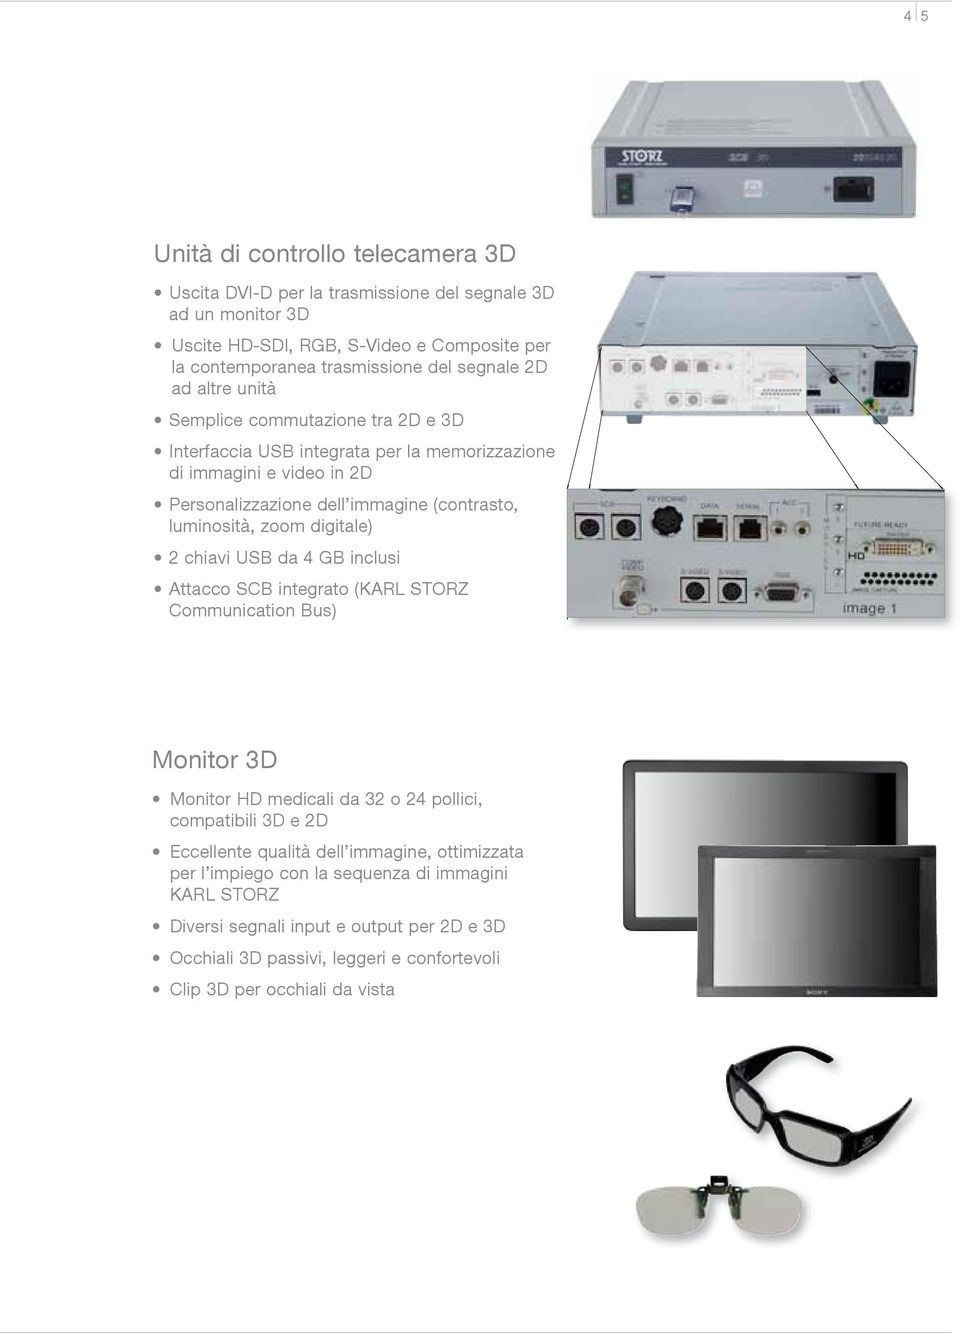 digitale) 2 chiavi USB da 4 GB inclusi Attacco SCB integrato (KARL STORZ Communication Bus) Monitor 3D Monitor HD medicali da 32 o 24 pollici, compatibili 3D e 2D Eccellente qualità dell